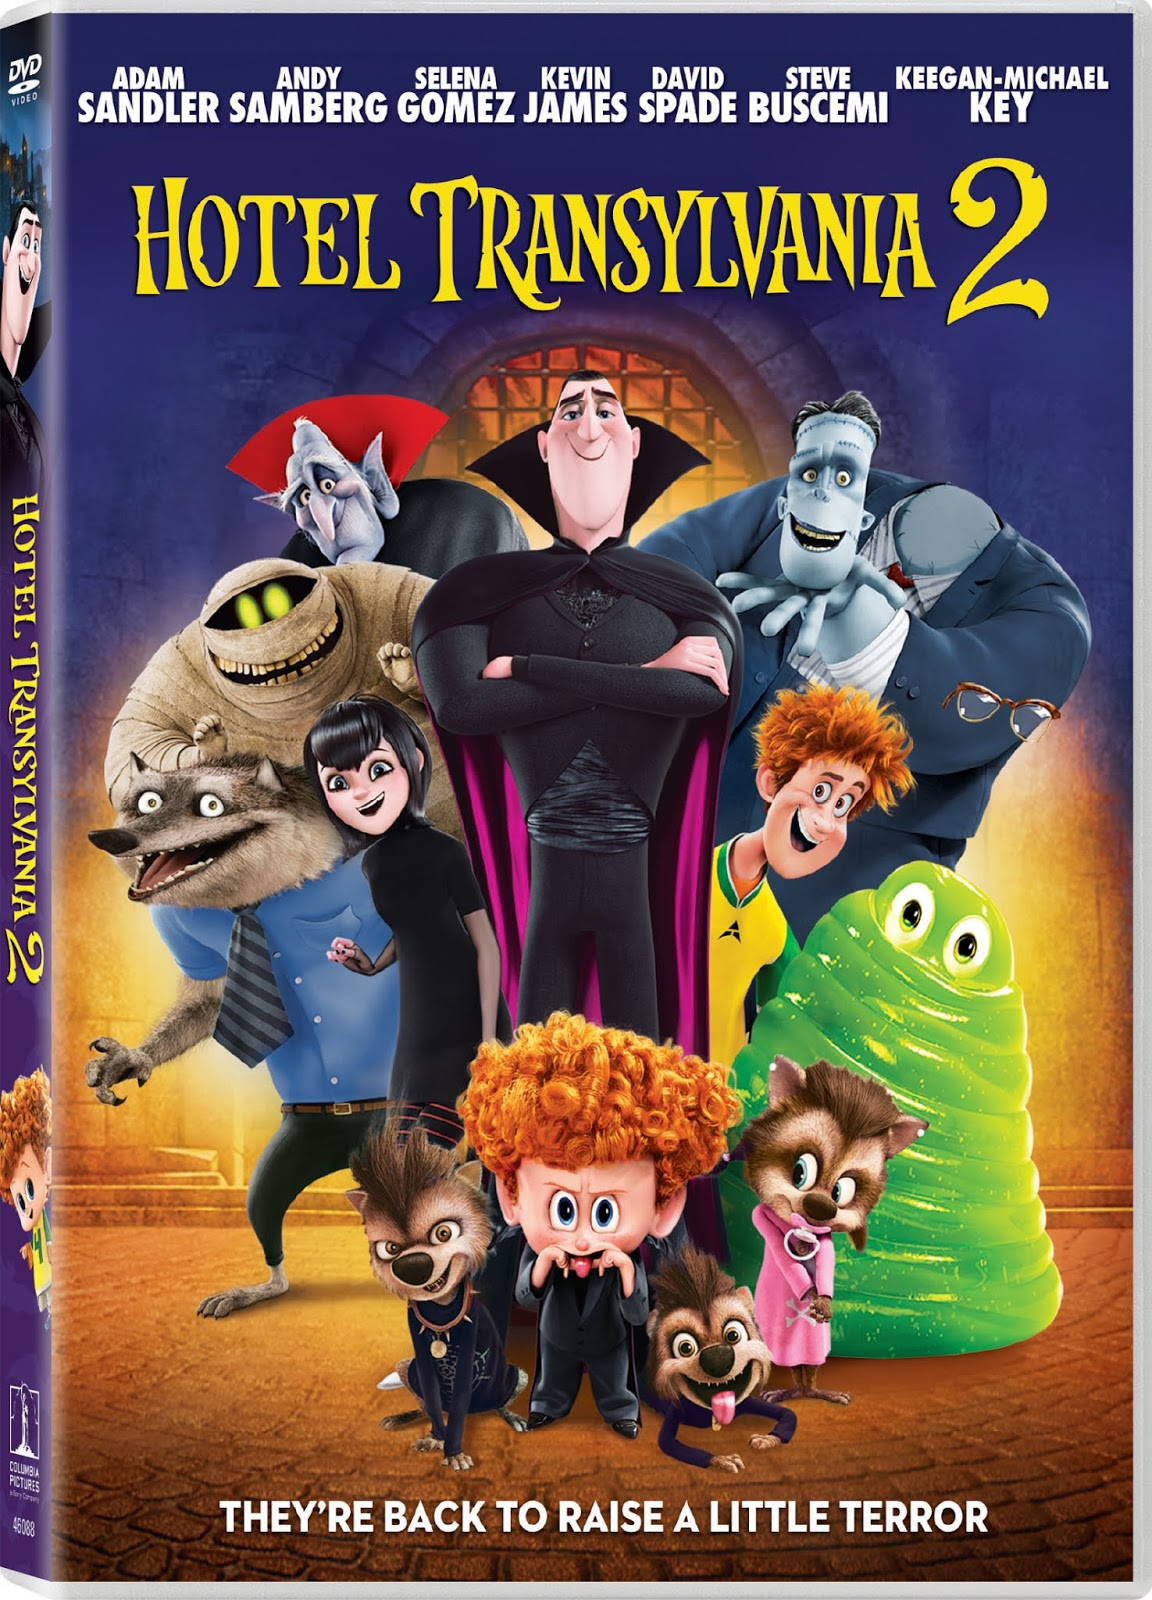 Welcome To Hotel Transylvania Draculas Lavish Five Stake Resort Where Monsters And Their Families Can Live It Up No Humans Are Allowed One Special